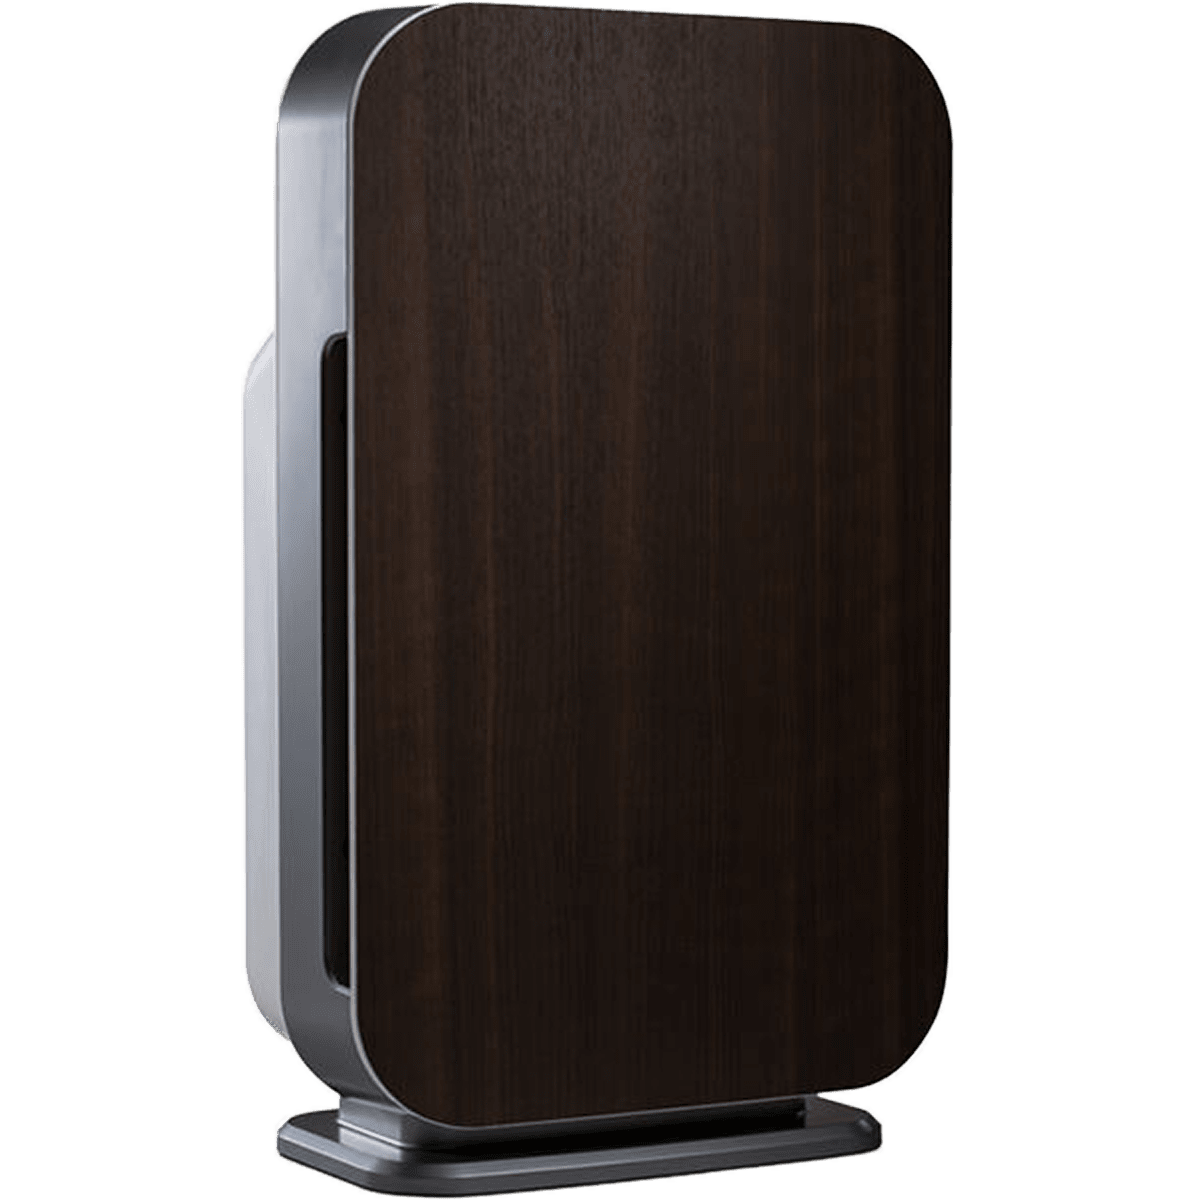 Alen BreatheSmart Flex HEPA Air Purifier al6265